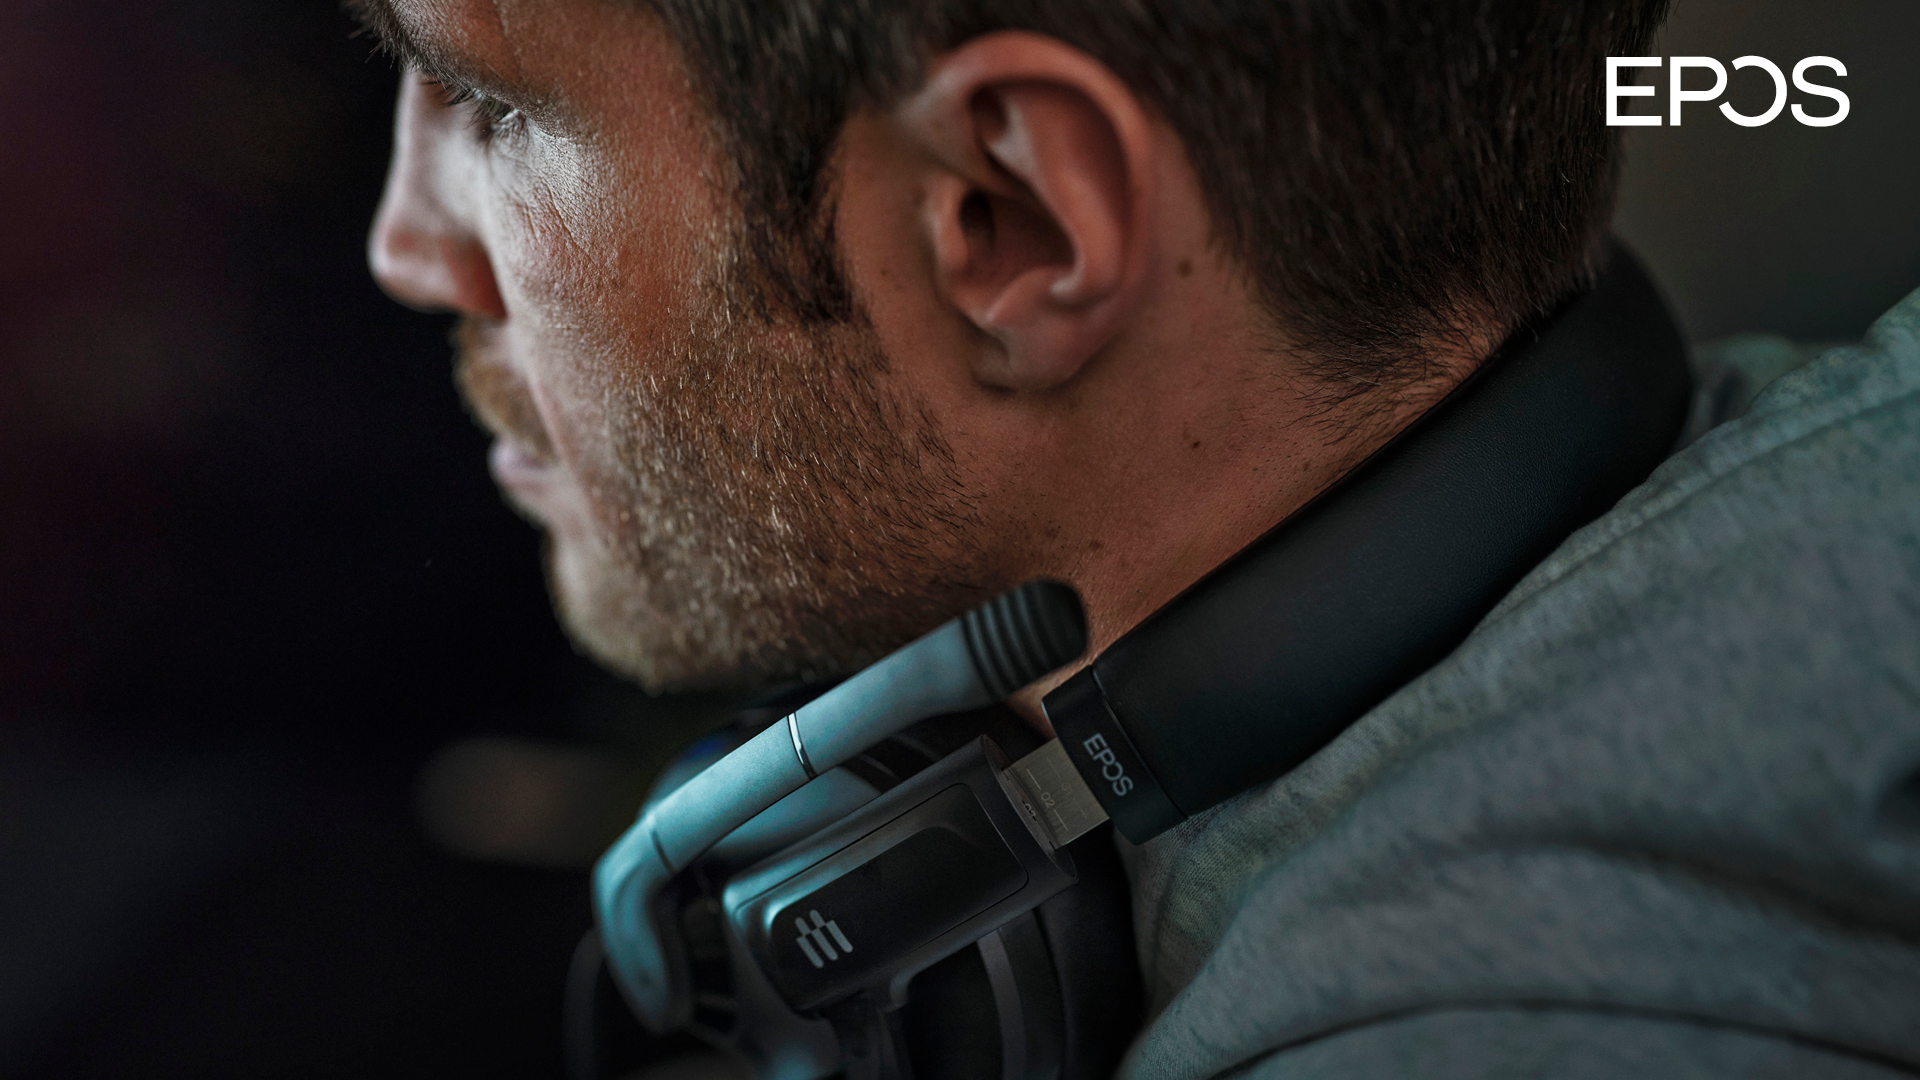 EPOS Introduces Next Generation of Quality Gaming Audio With H3 Wired Gaming Headset